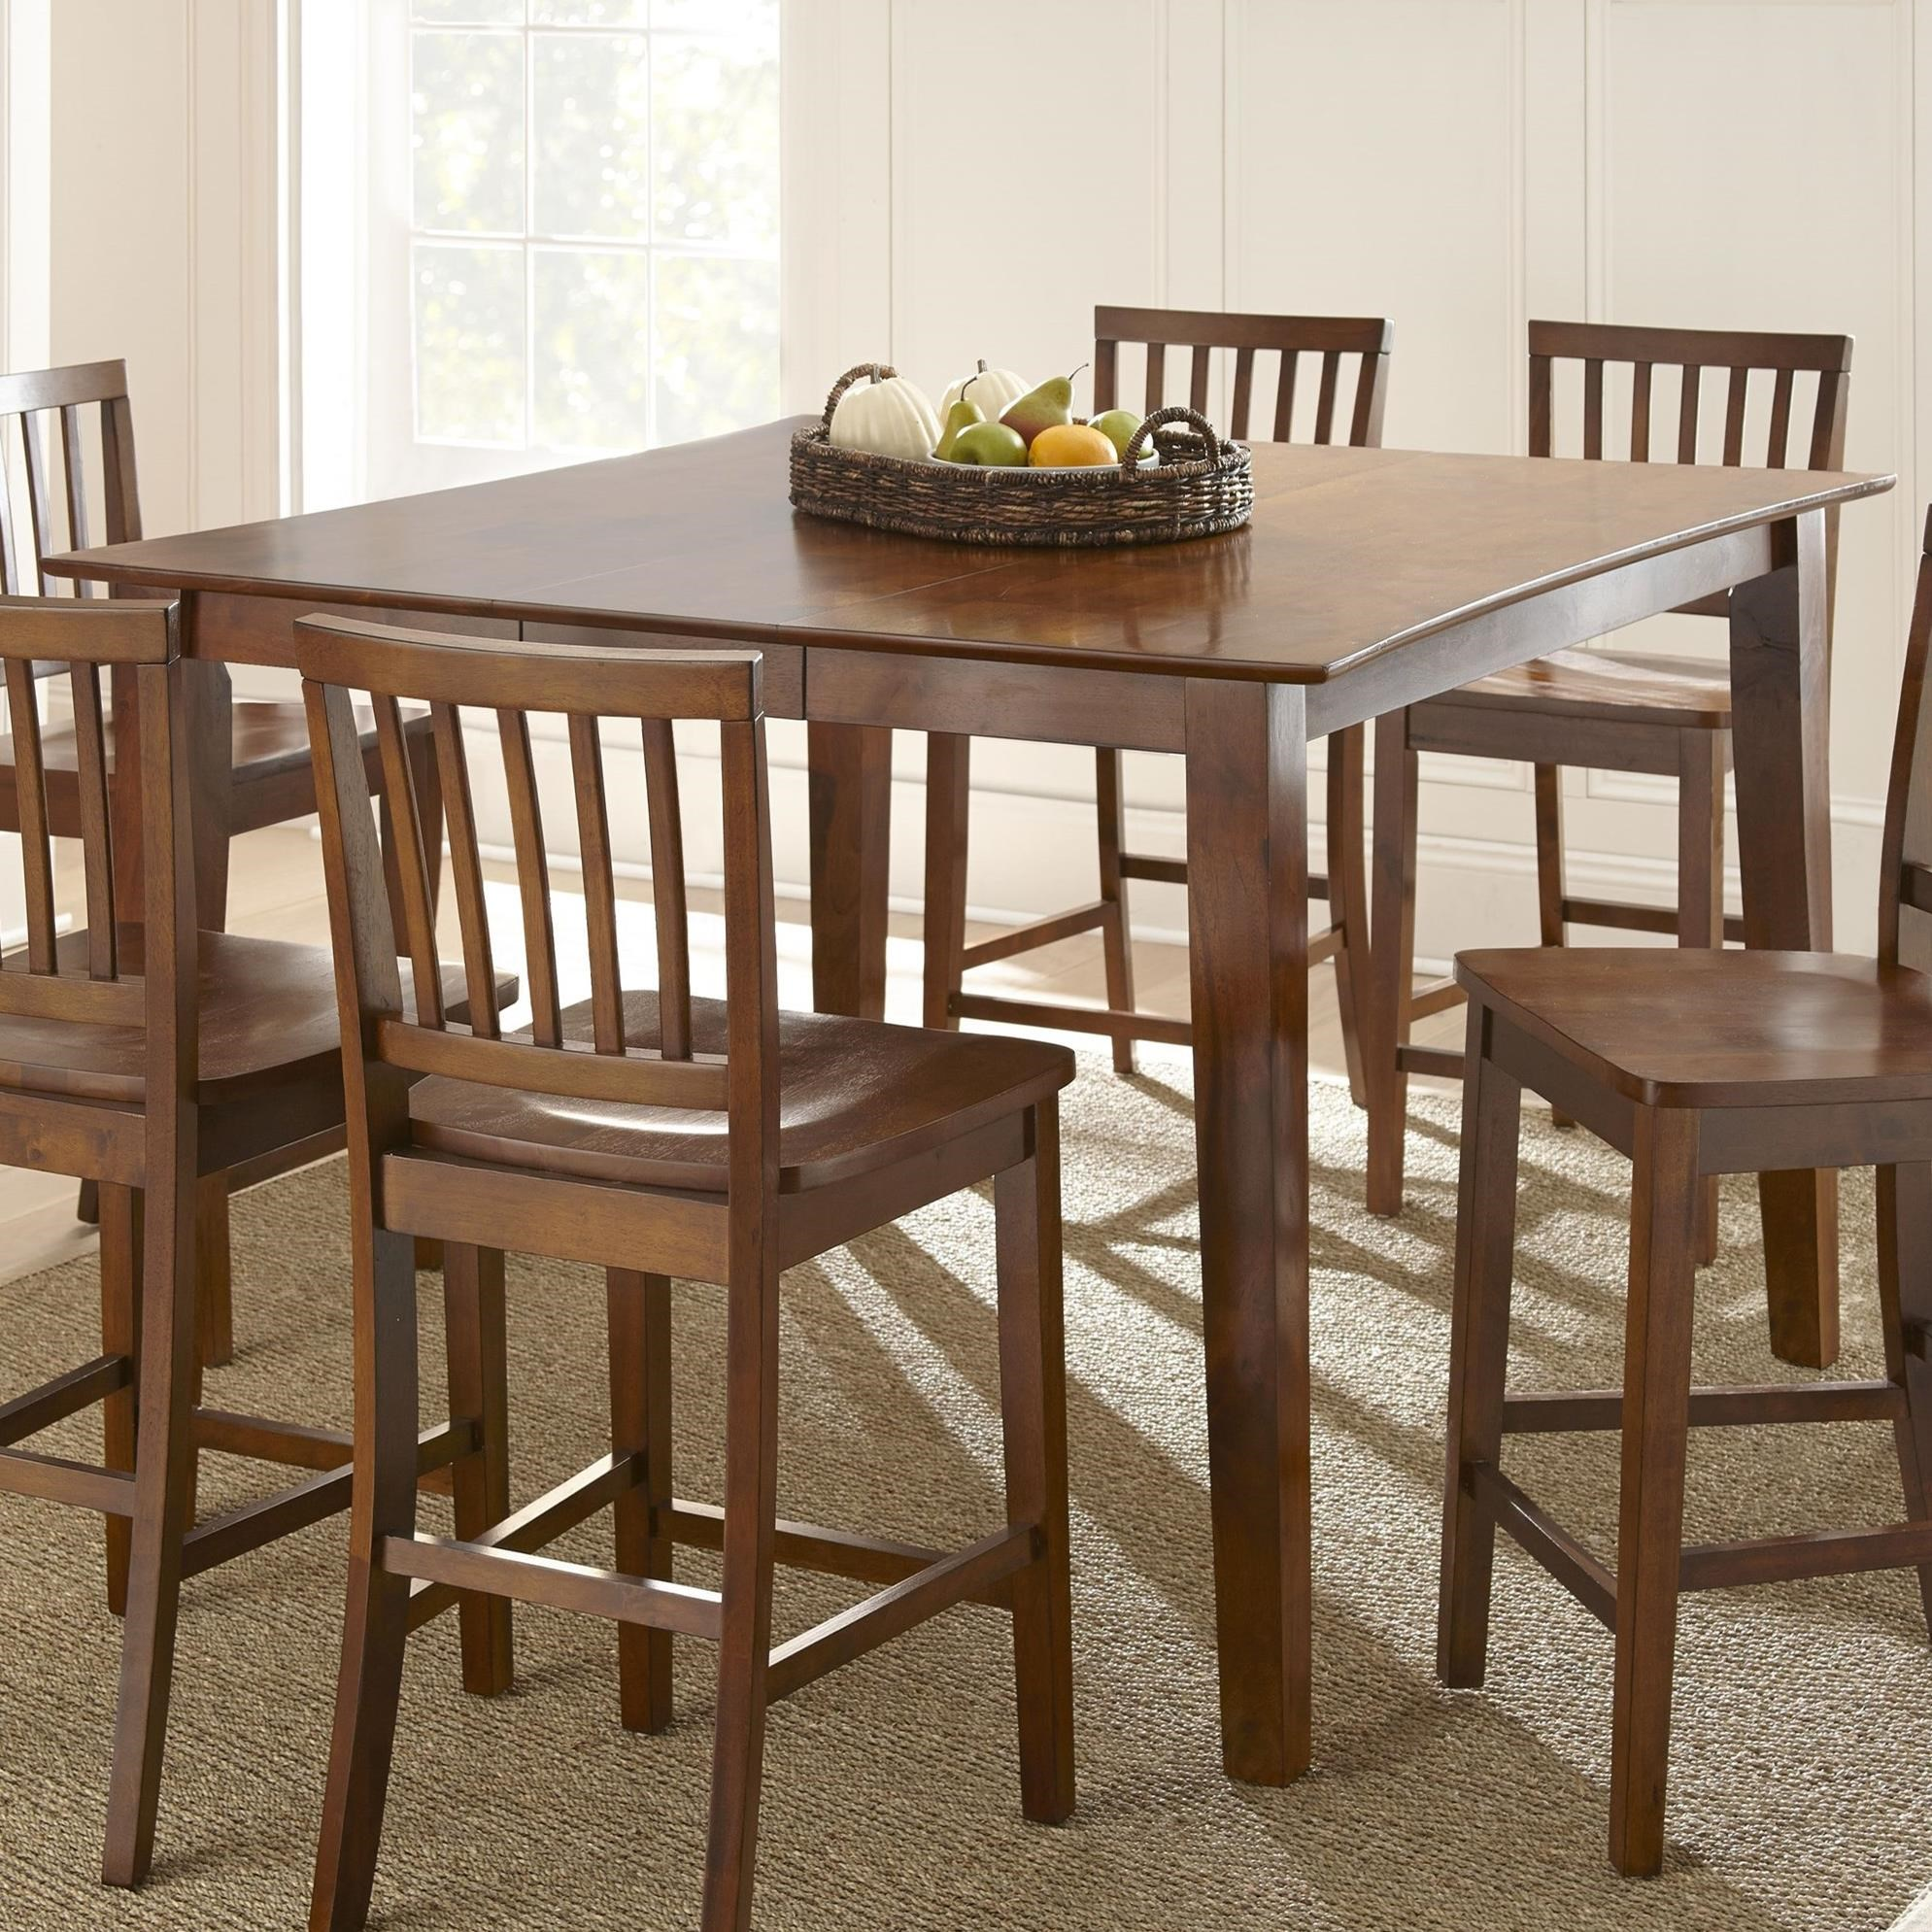 Prime Branson Counter Height Dining Table Prime Brothers Furniture Pub Tables